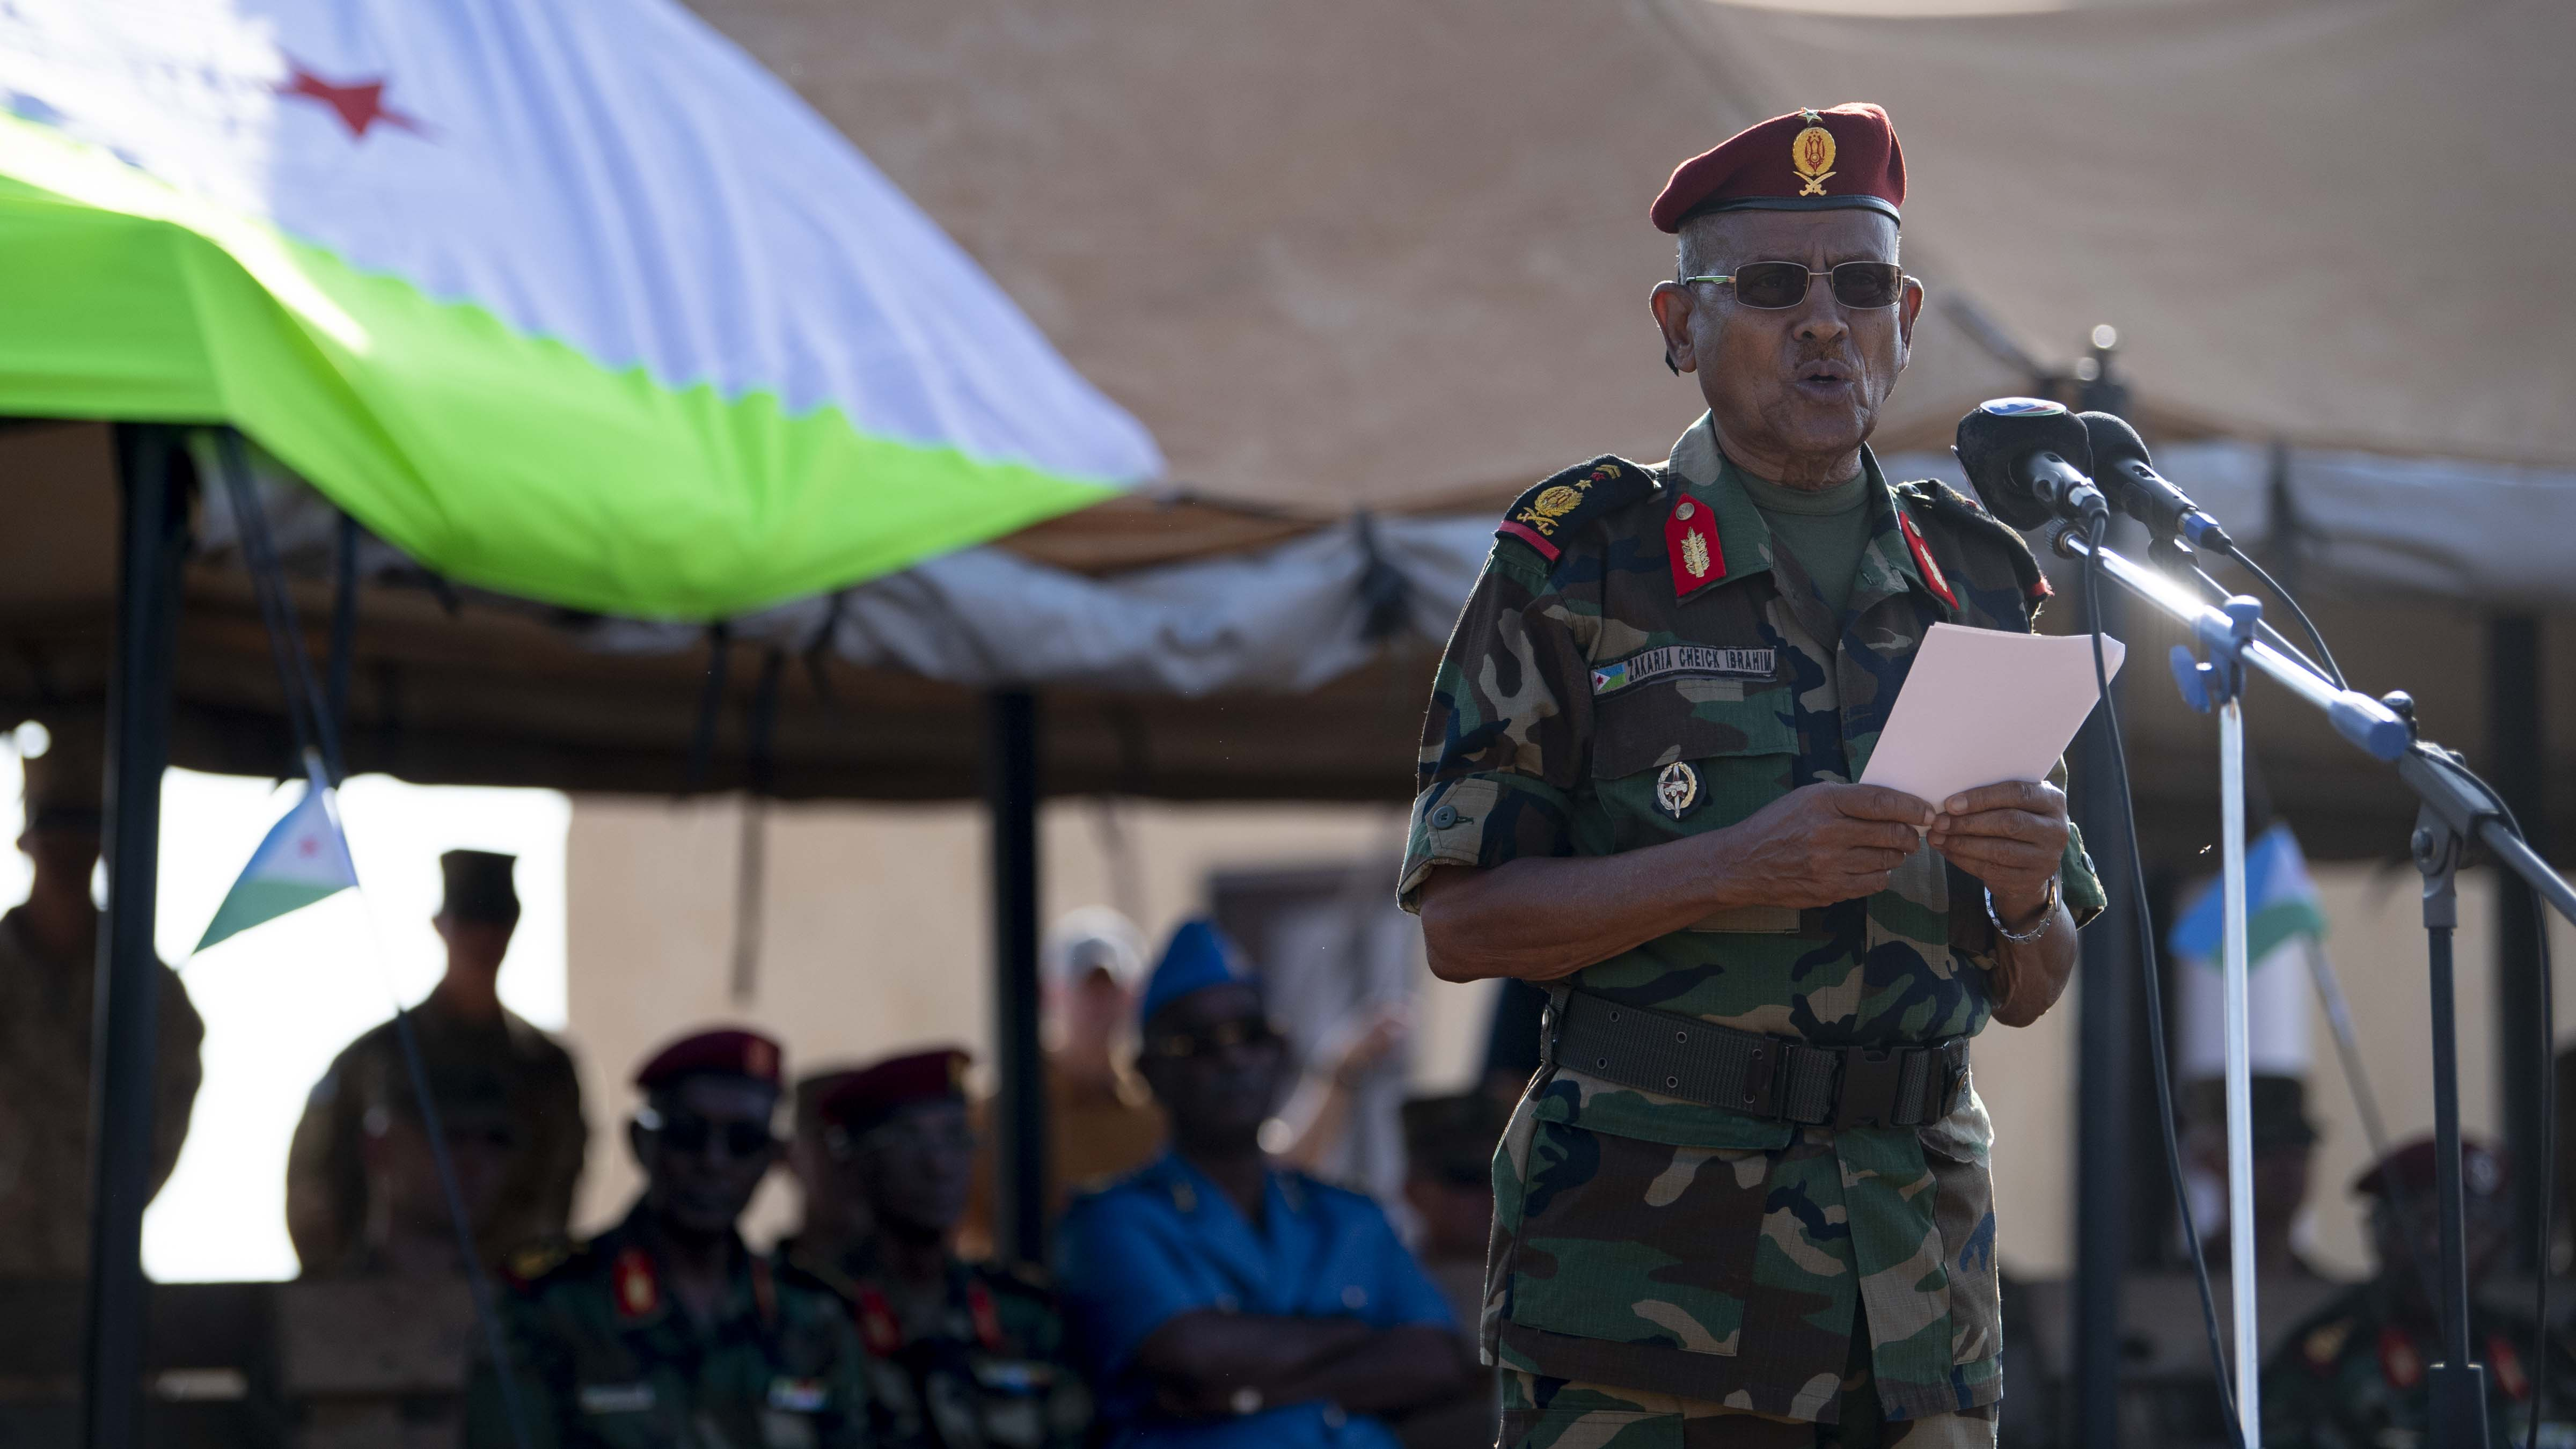 Djiboutian Lt. Gen. Zakaria Cheikh Ibrahim, chief of staff of the Djibouti Armed Forces, provides remarks during the Rapid Intervention Battalion (RIB) change of command, in Djibouti, Oct. 31, 2019. Djiboutian Maj. Mohamed Assowen assumed command of the RIB from Djiboutian Capt. Omar Ali Hassan. (U.S. Air Force photo by Staff Sgt. J.D. Strong II)